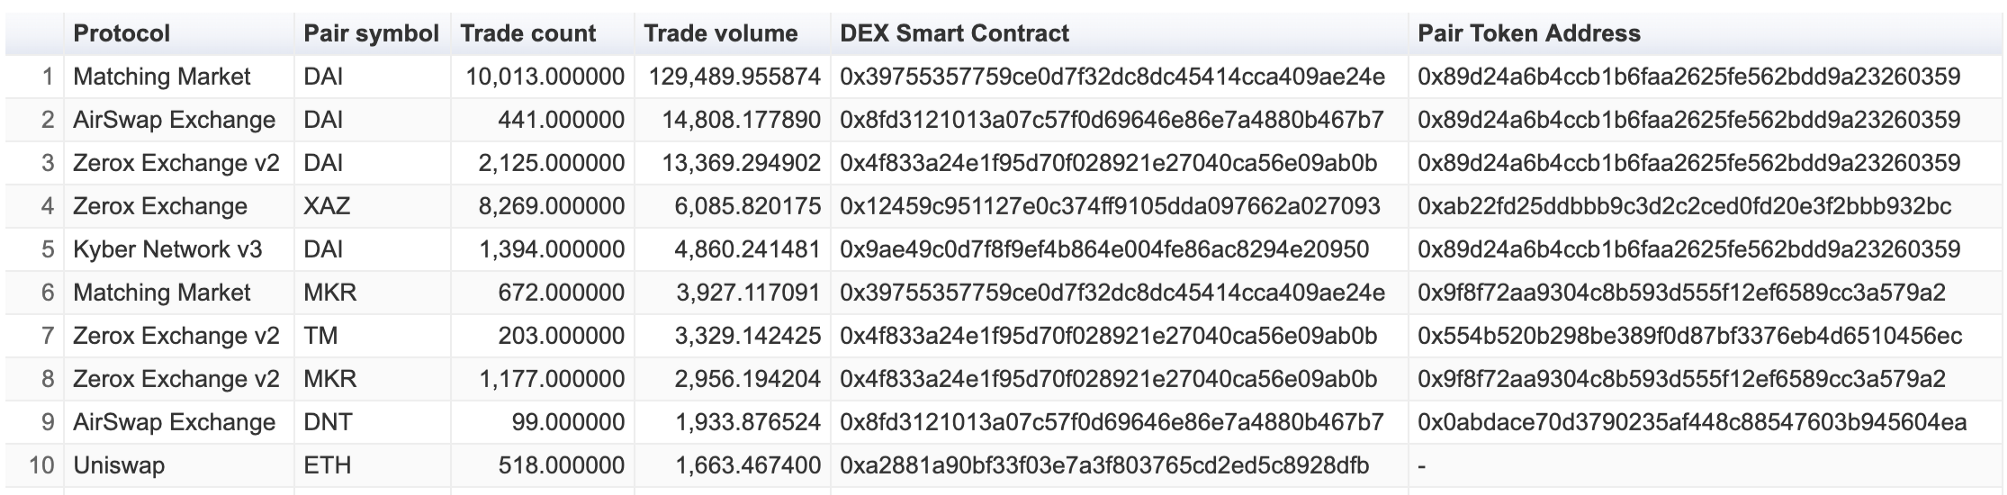 Top 10 pairs for WETH on DEX.